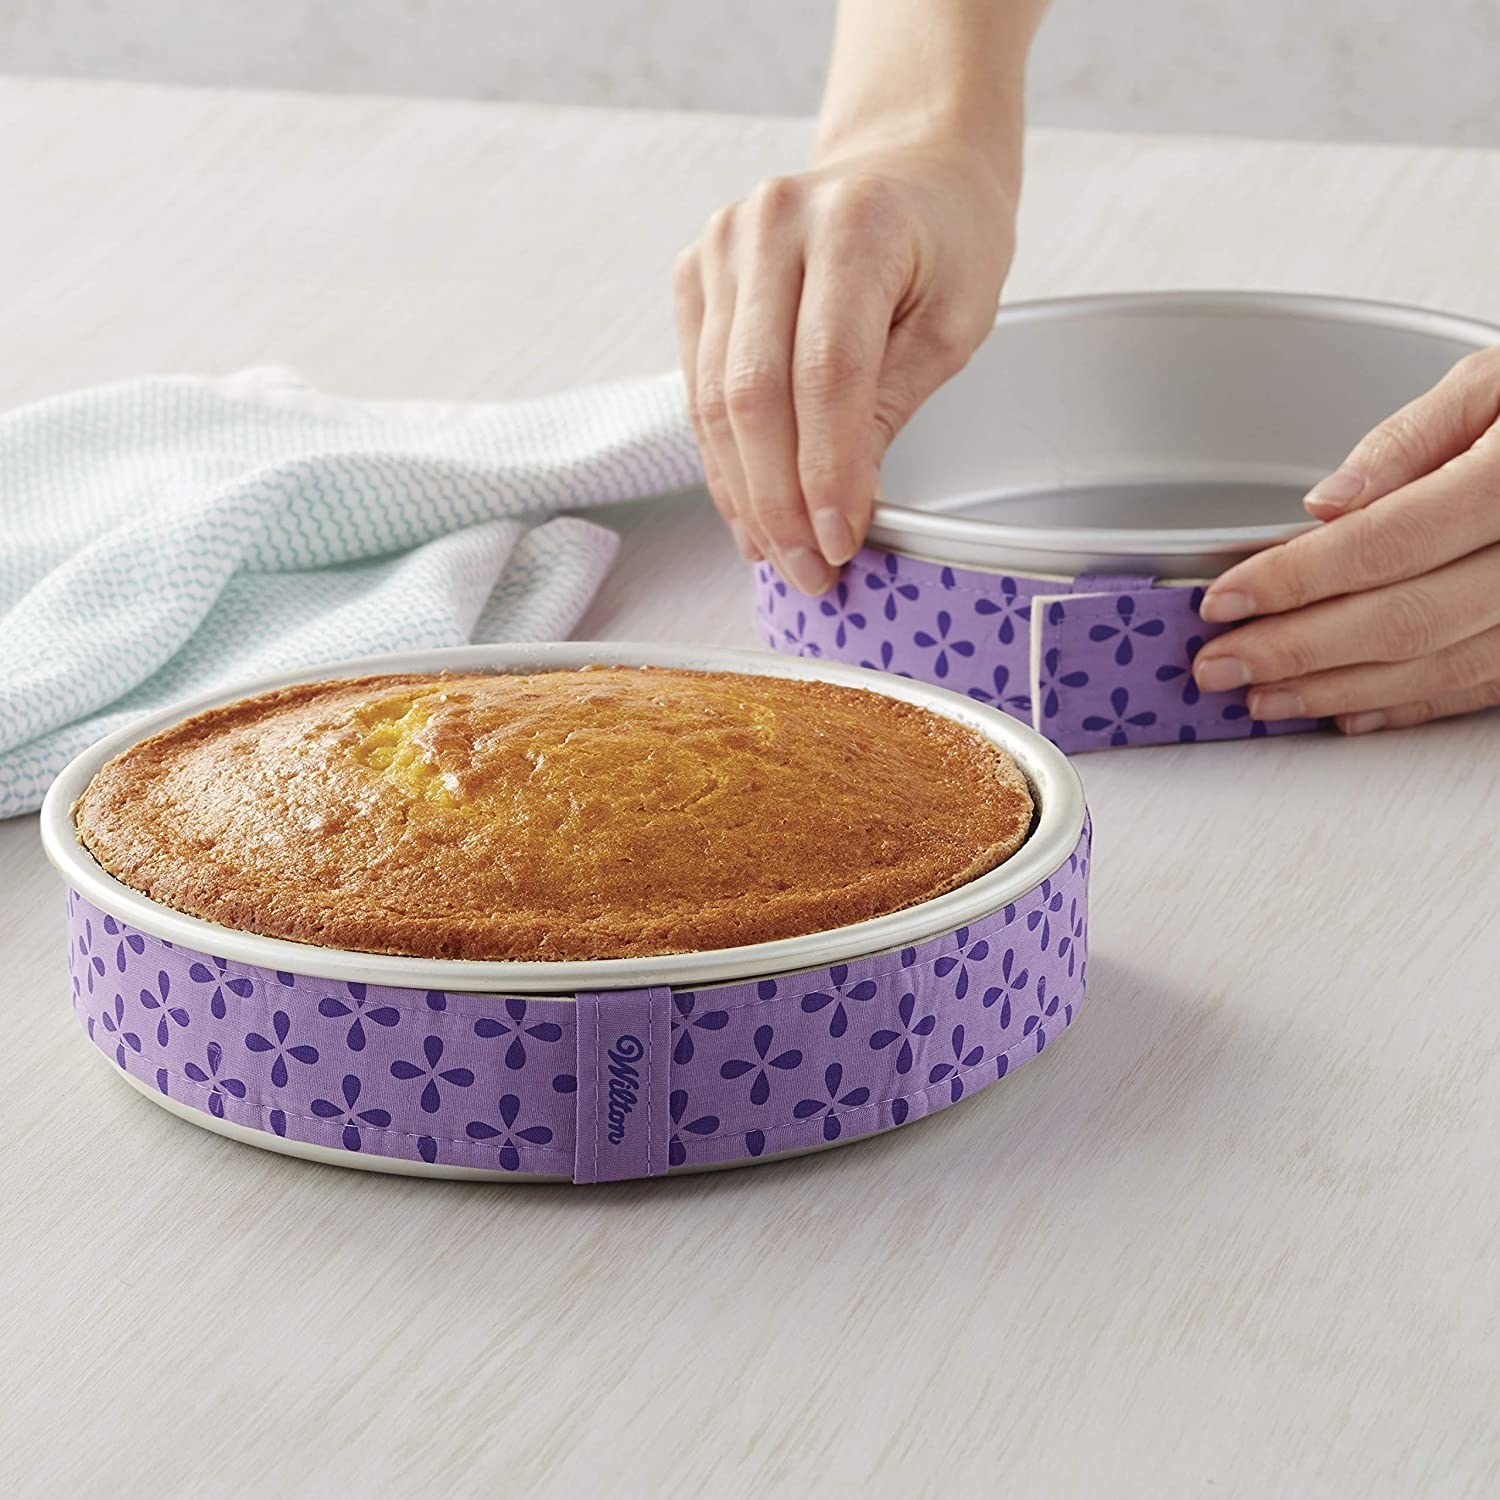 A person attaches the cake strips to a baking pan while another perfectly cooked cake rests next to it